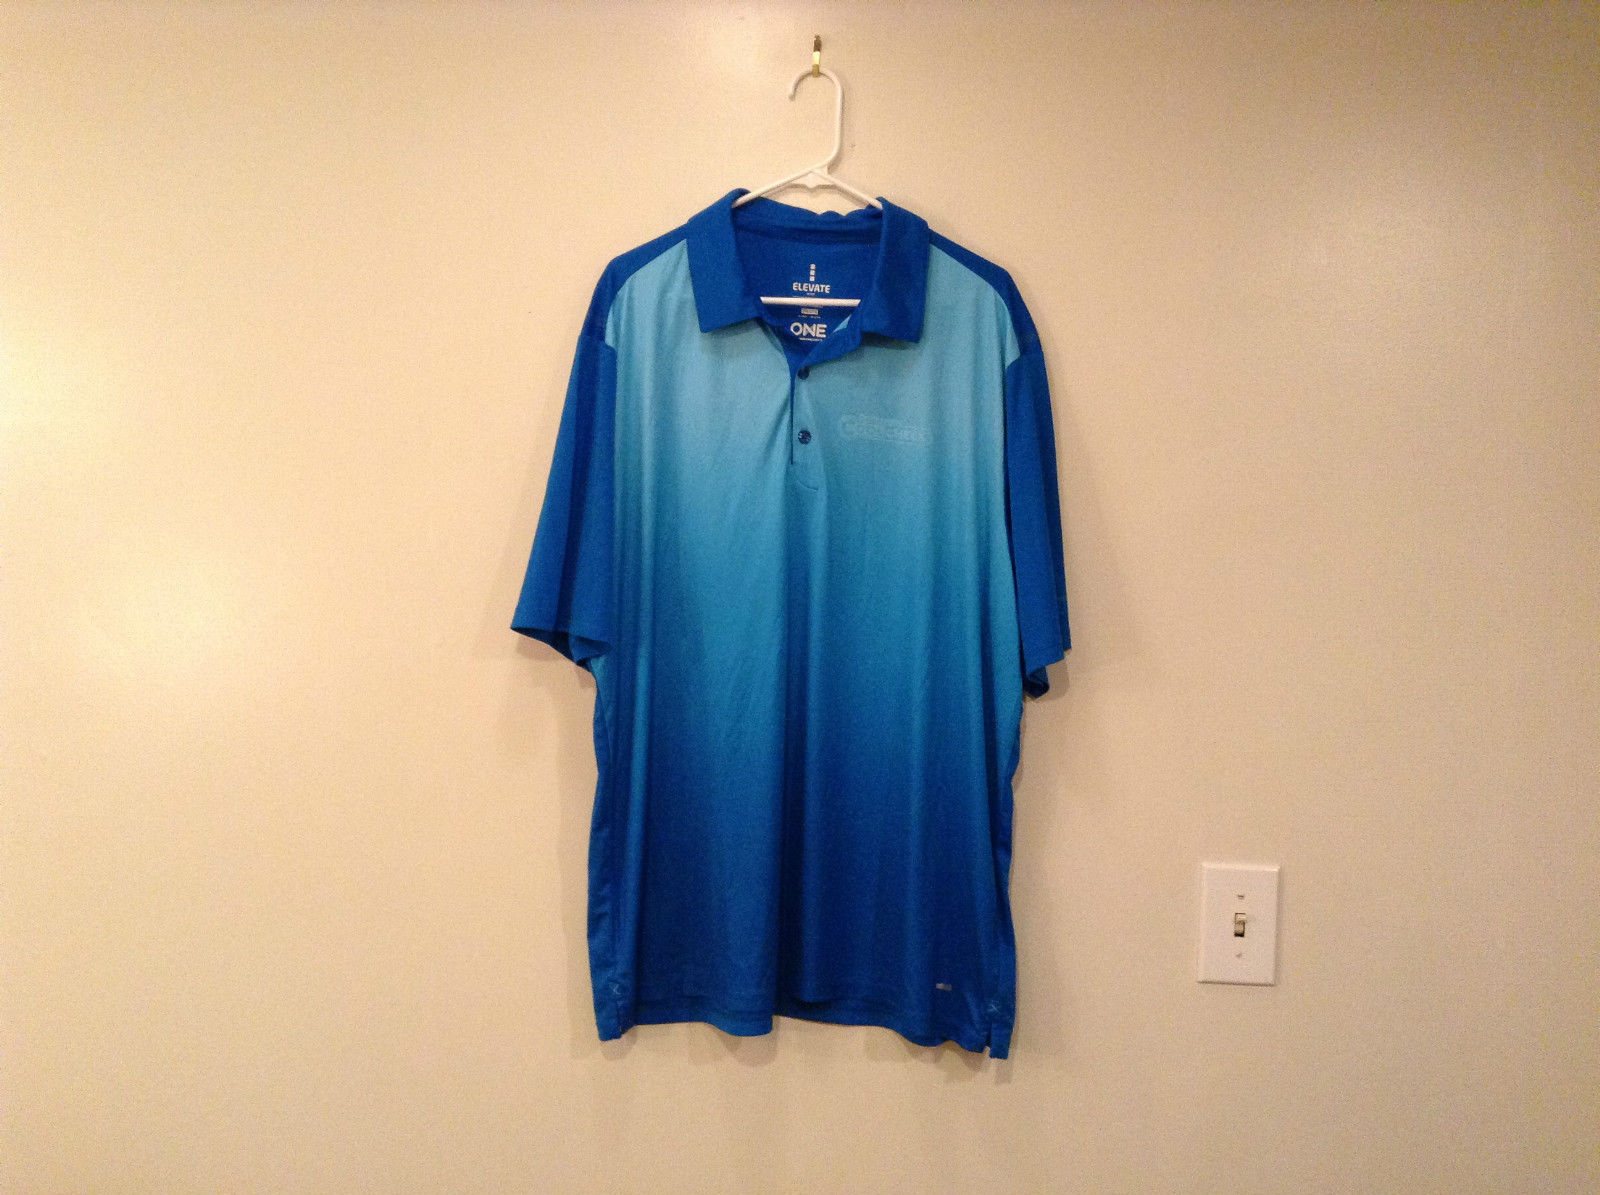 Elevate Sport Jersey Short Sleeve Polo Shirt Blue from Light to Dark Size 2XL